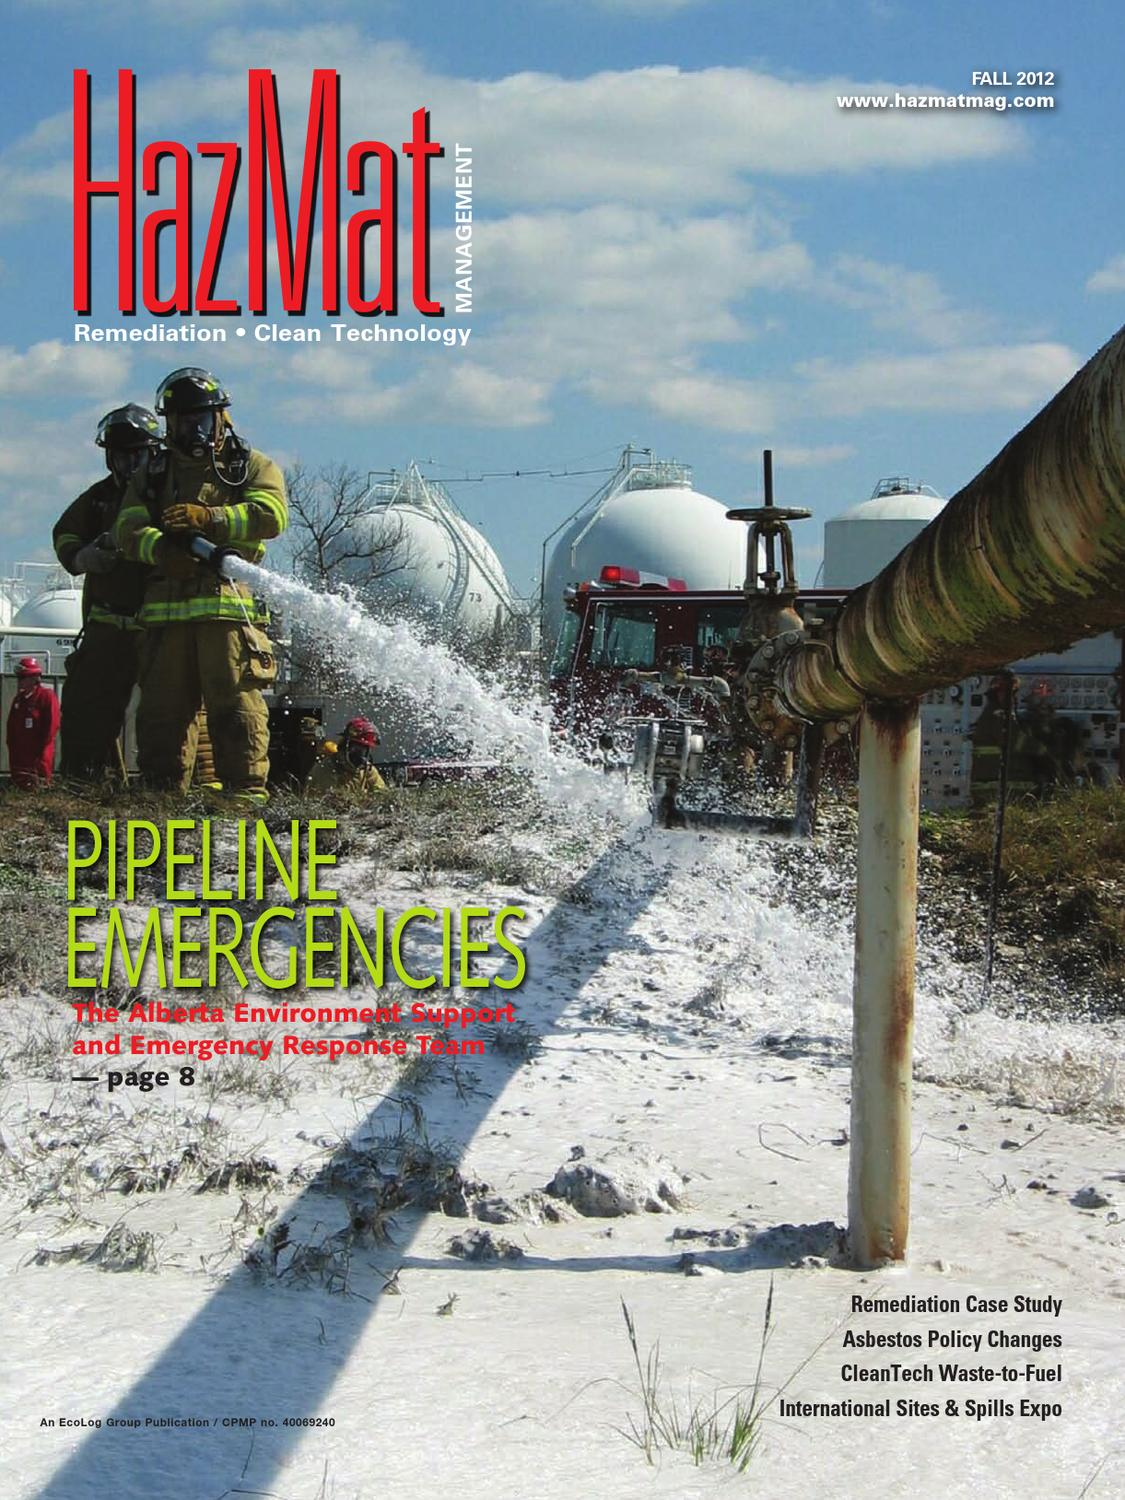 Hazardous Material Management Fall 2012 by Annex-Newcom LP - issuu